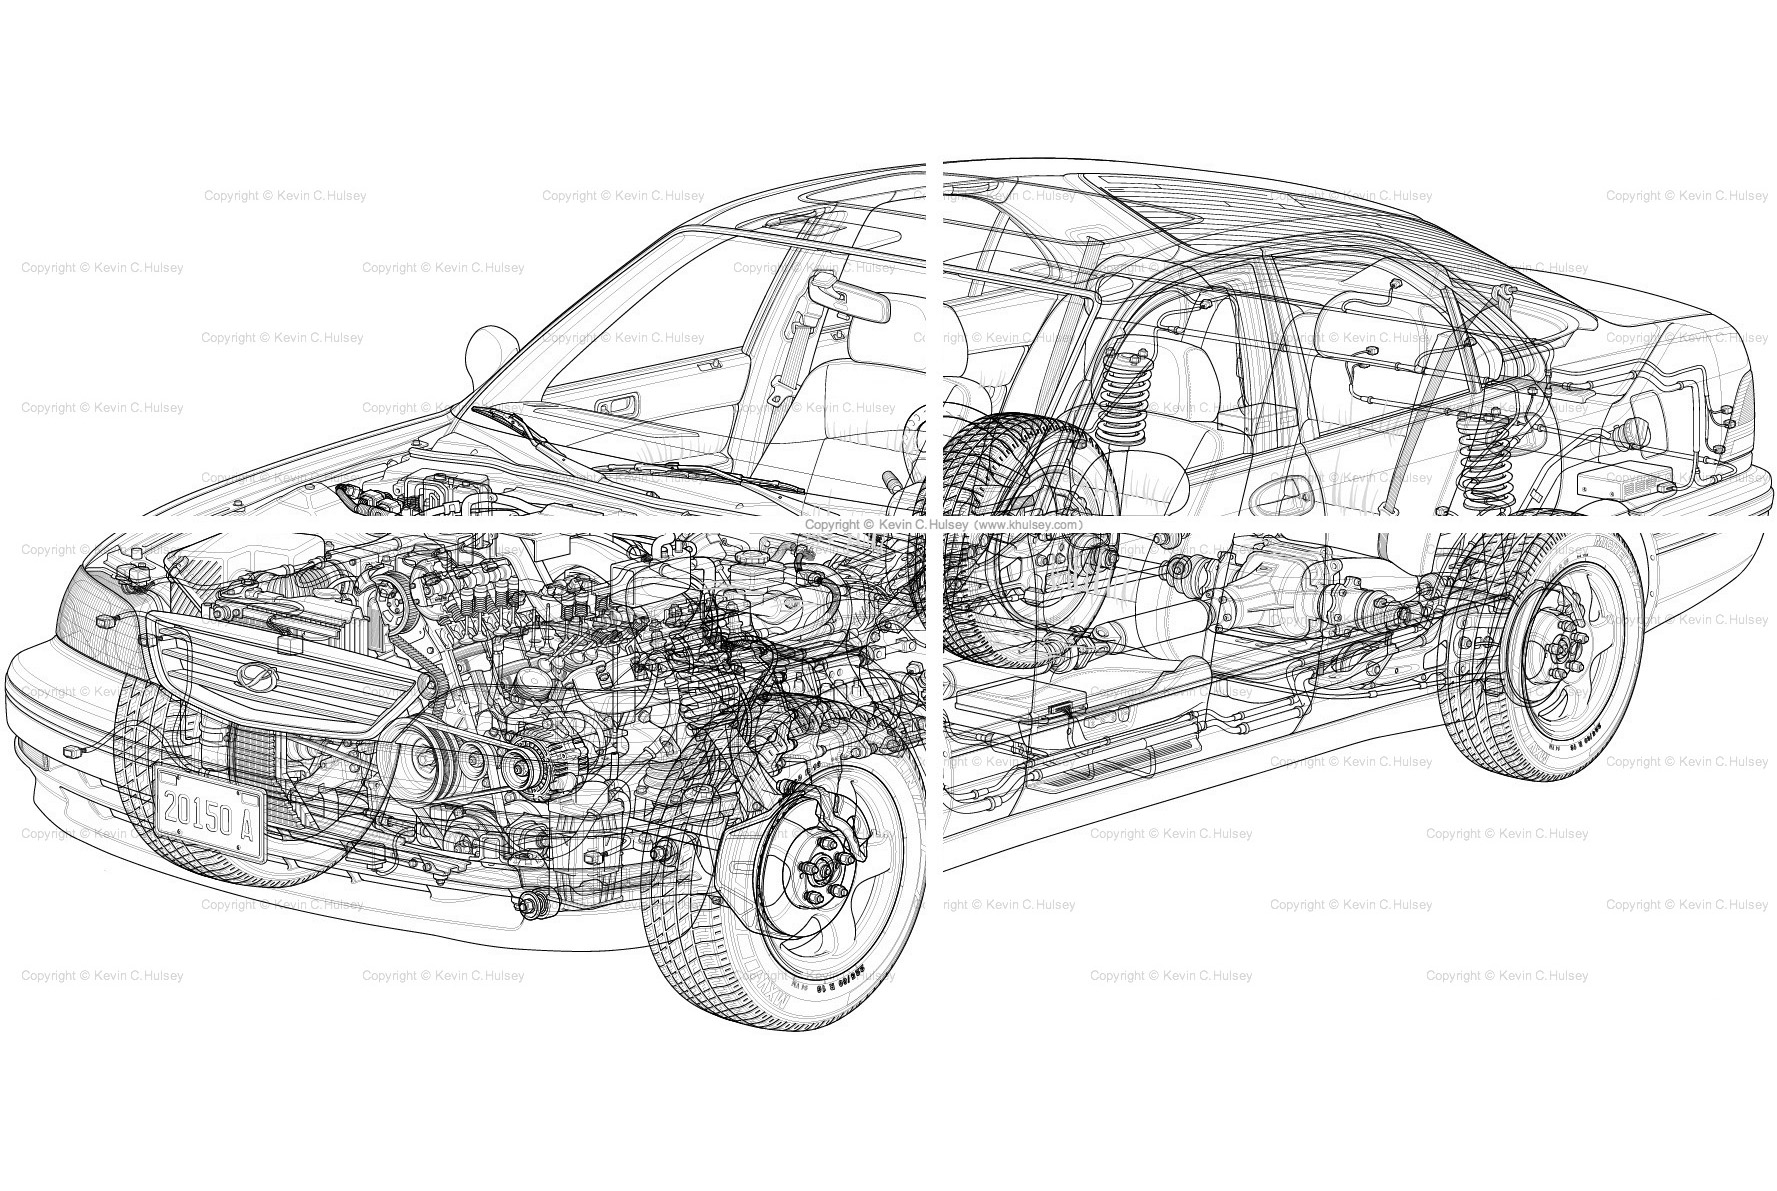 Automotive line drawings generic car cutaway line drawing malvernweather Choice Image